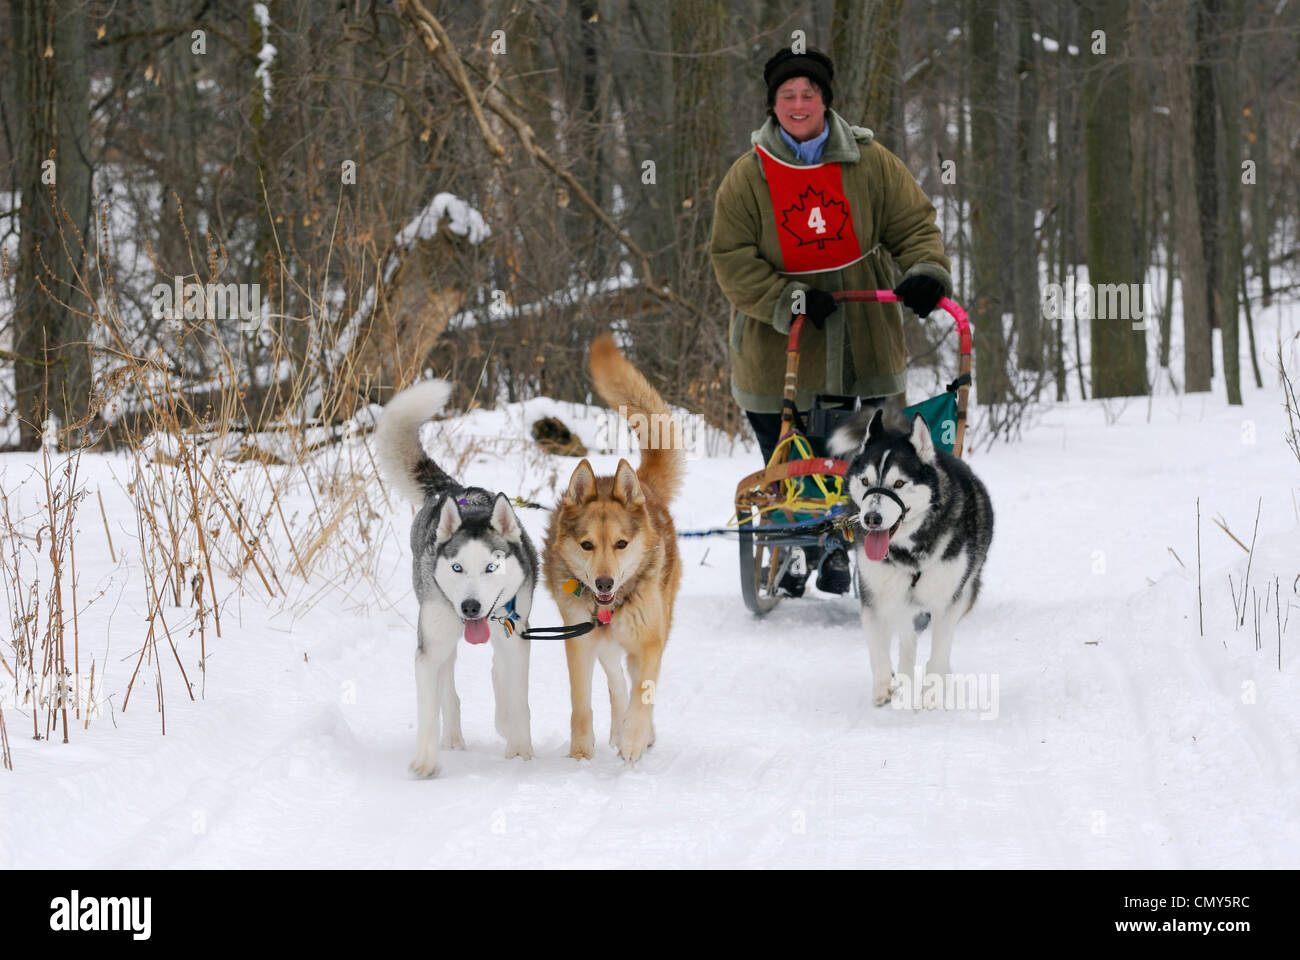 Female recreational dog sleder mushing on snowy forest trail in Canada - Stock Image